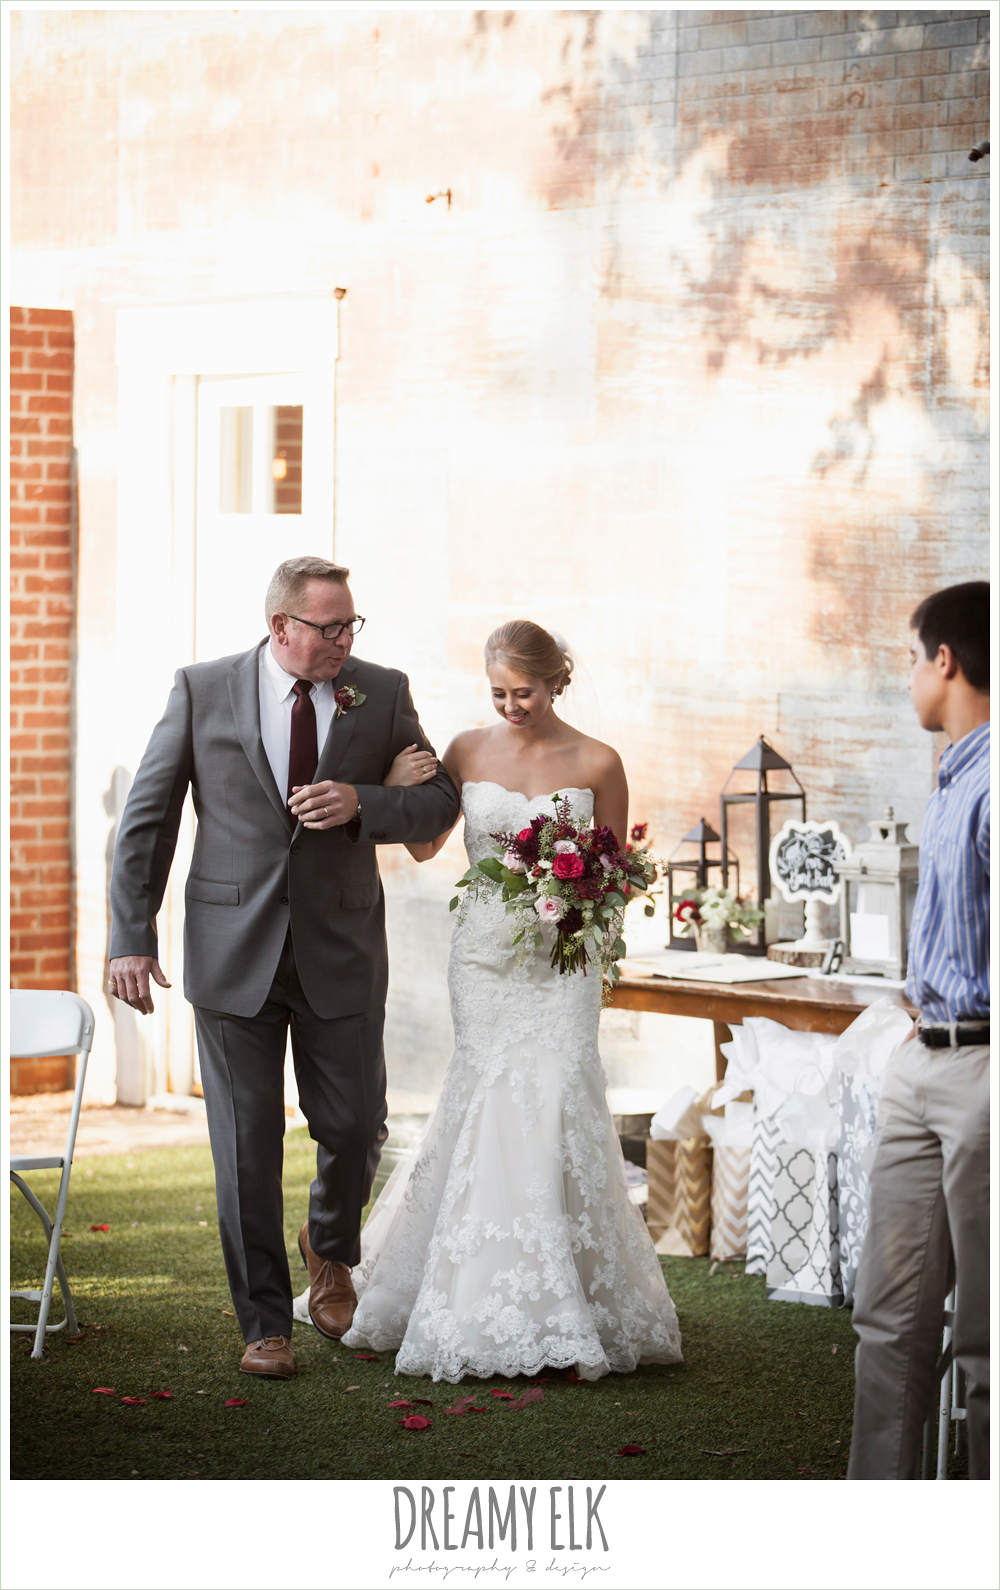 bride and dad walking down the aisle, flourish floral design, burgundy and light pink wedding bouquets, the union on 8th wedding photo {dreamy elk photography and design}